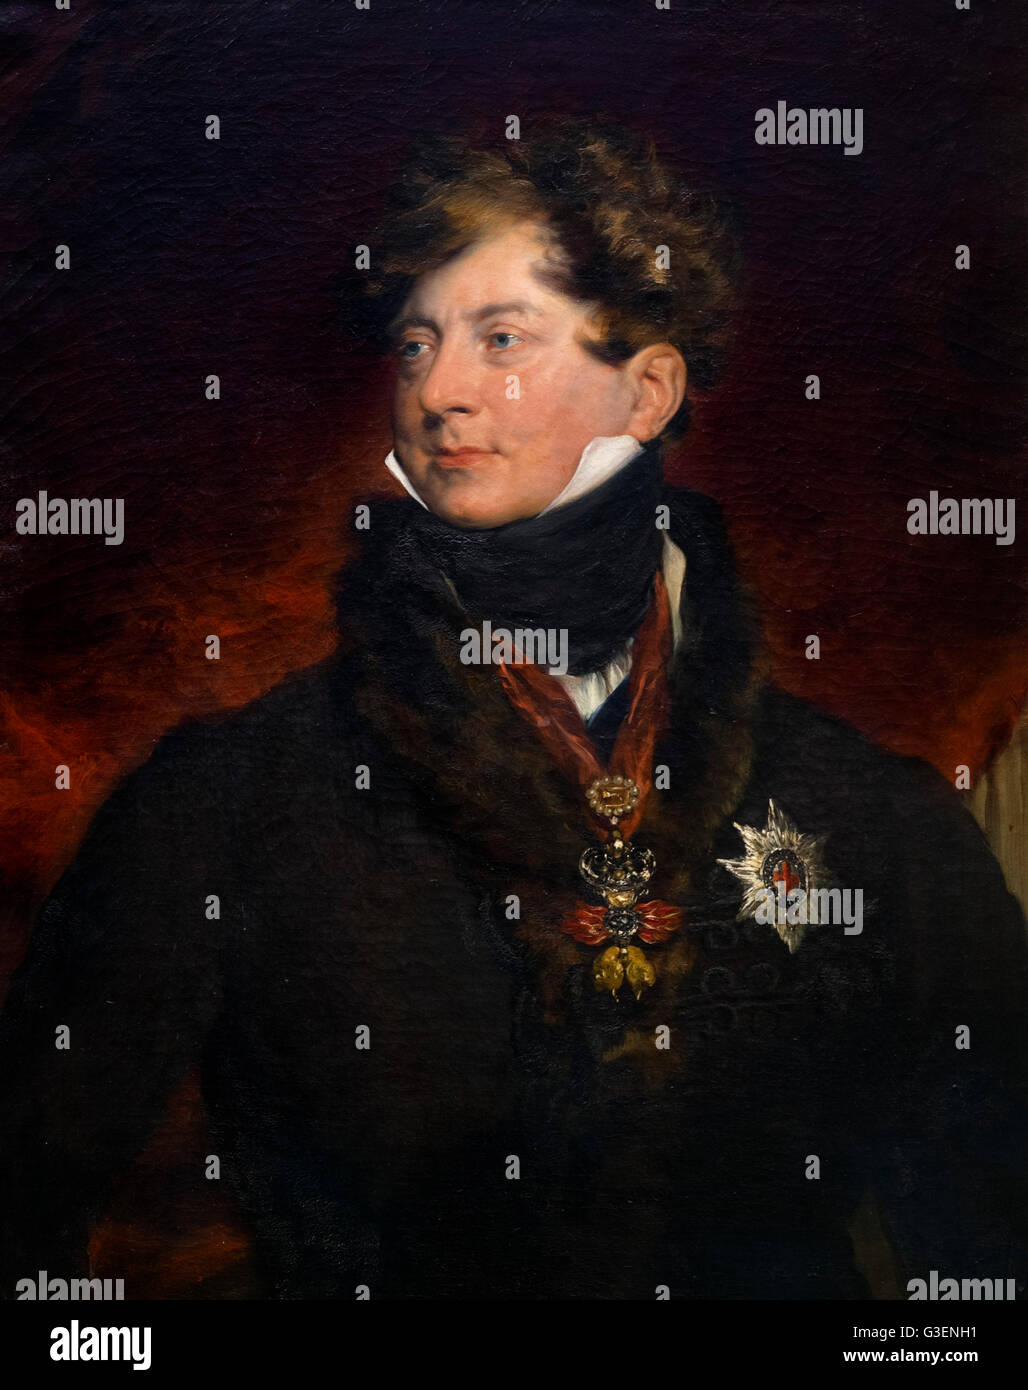 George IV. Portrait of King George IV (George Augustus Frederick; 1762-1830), by Sir Thomas Lawrence, oil on canvas, - Stock Image